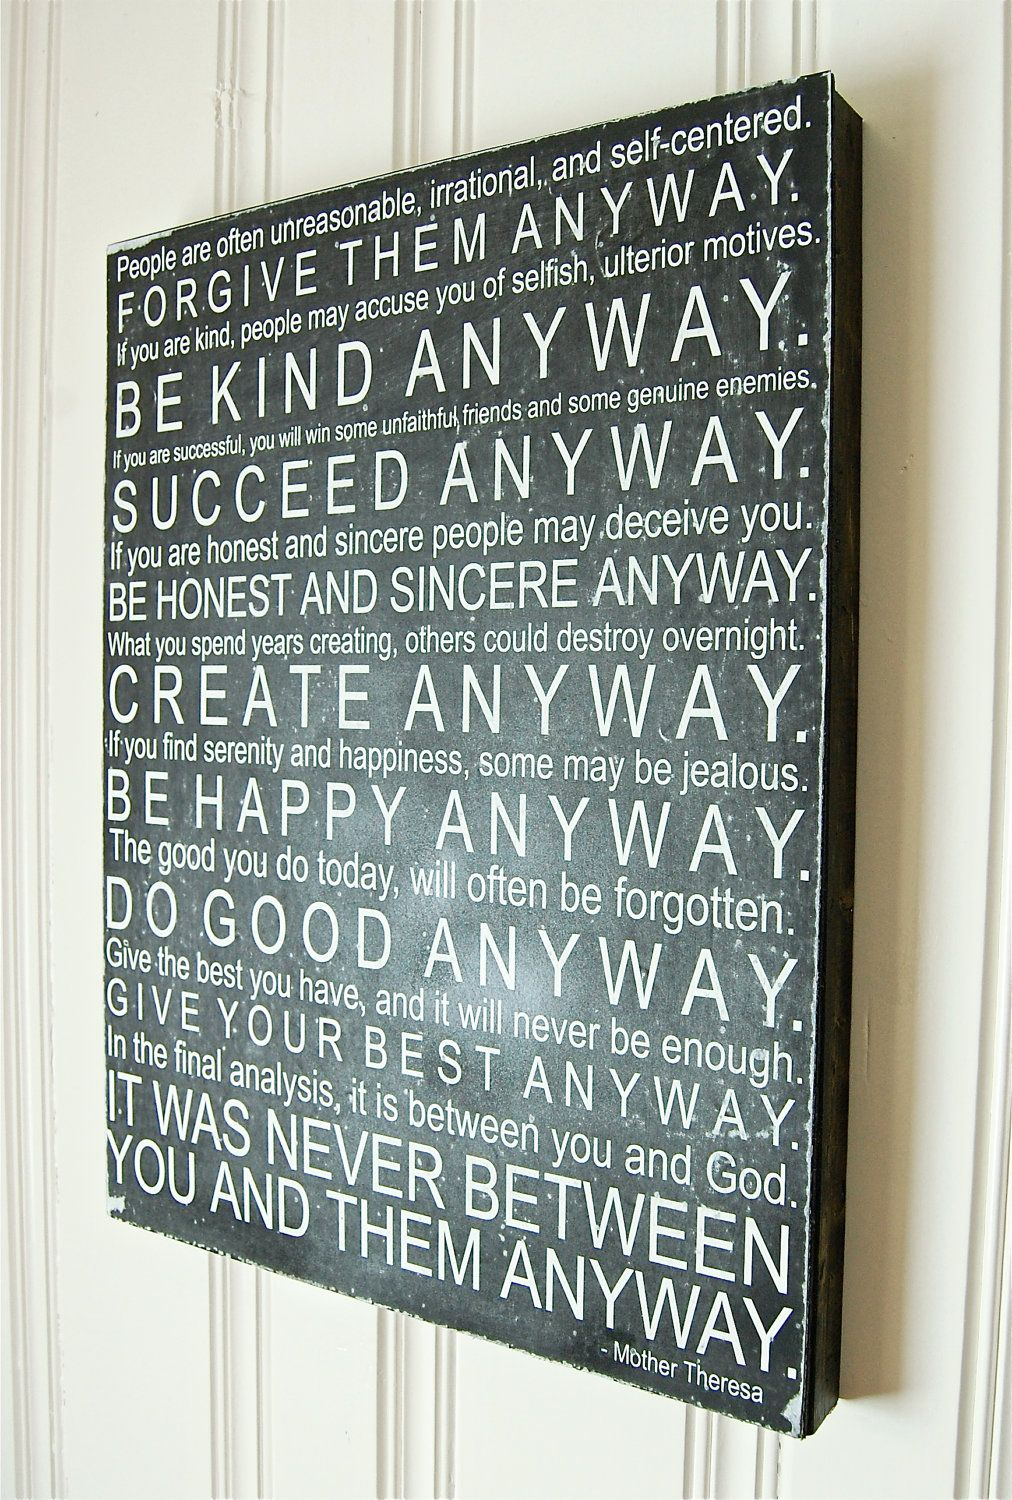 Mother Teresa Quotes Love Anyway For My Sign Wall Subway Art Mother Teresa Quote Wooden.